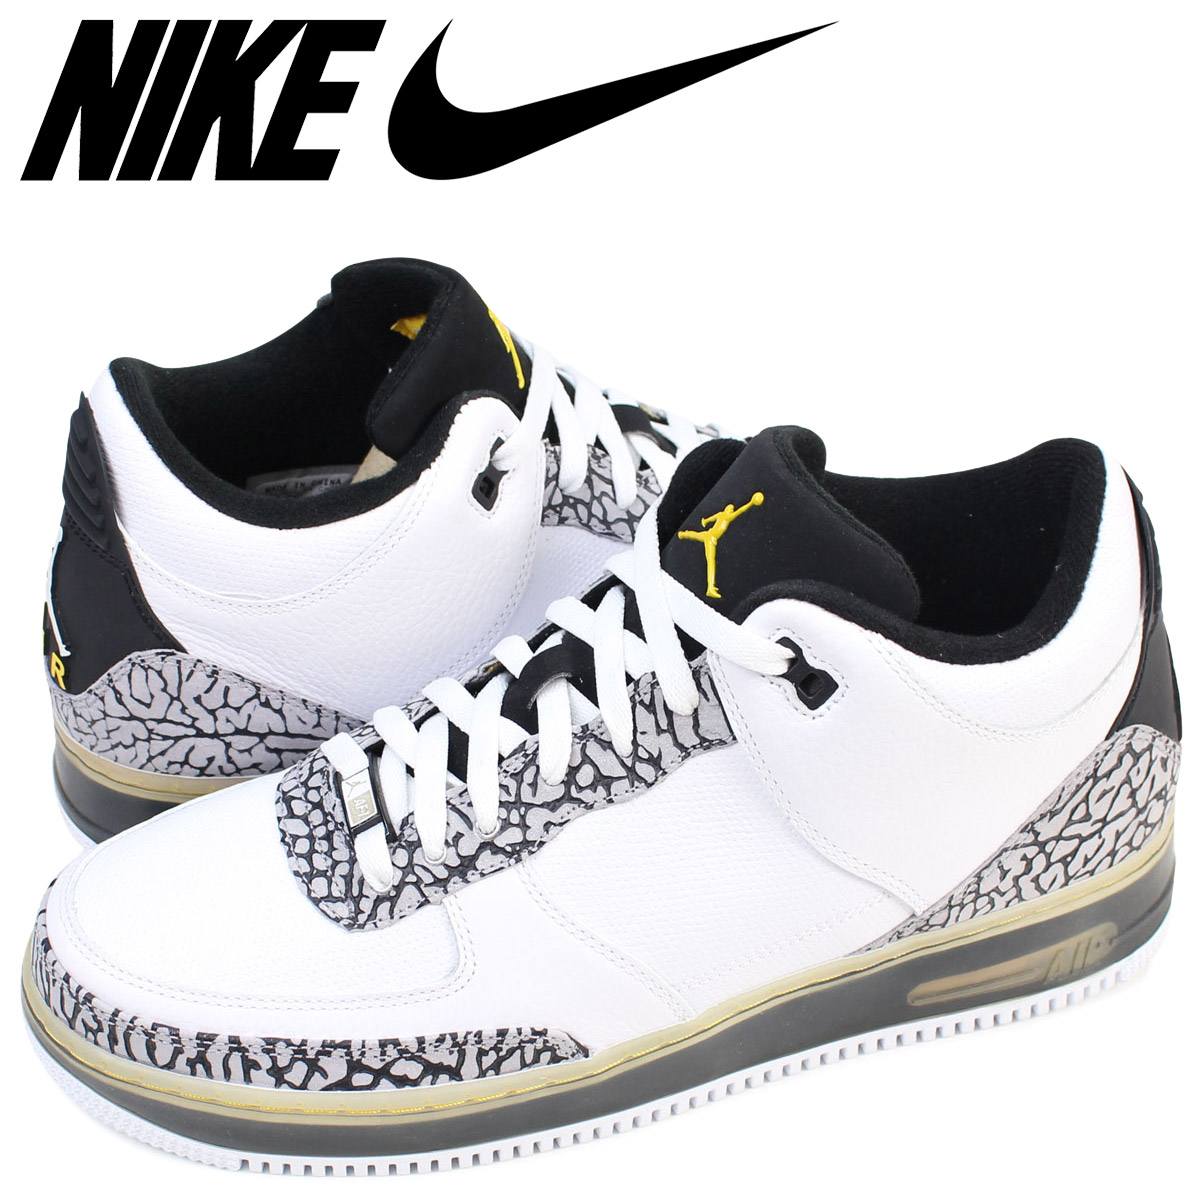 reputable site f69f7 9e1ec  SOLD OUT  NIKE Nike Air Jordan sneakers AIR JORDAN FUSION 3 fusion 3  323,626 ...